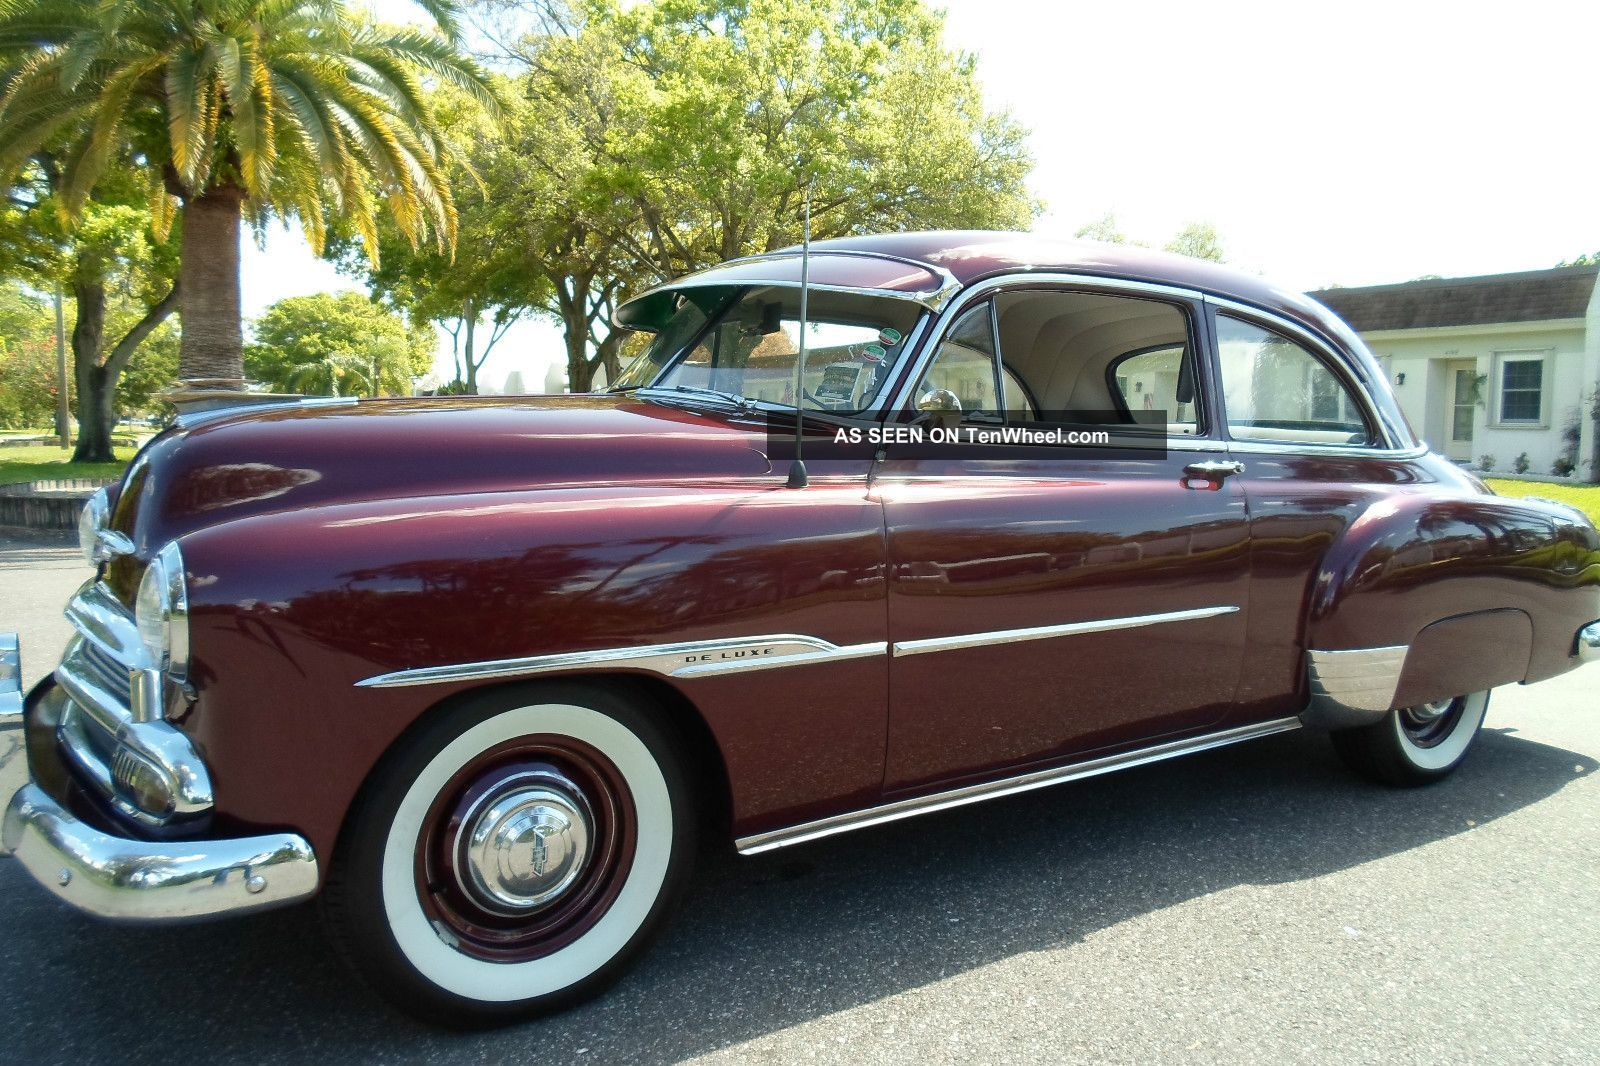 1951 Chevy Cars Chevrolet Deluxe Showcar Show Car Convertible Classic Other Photo